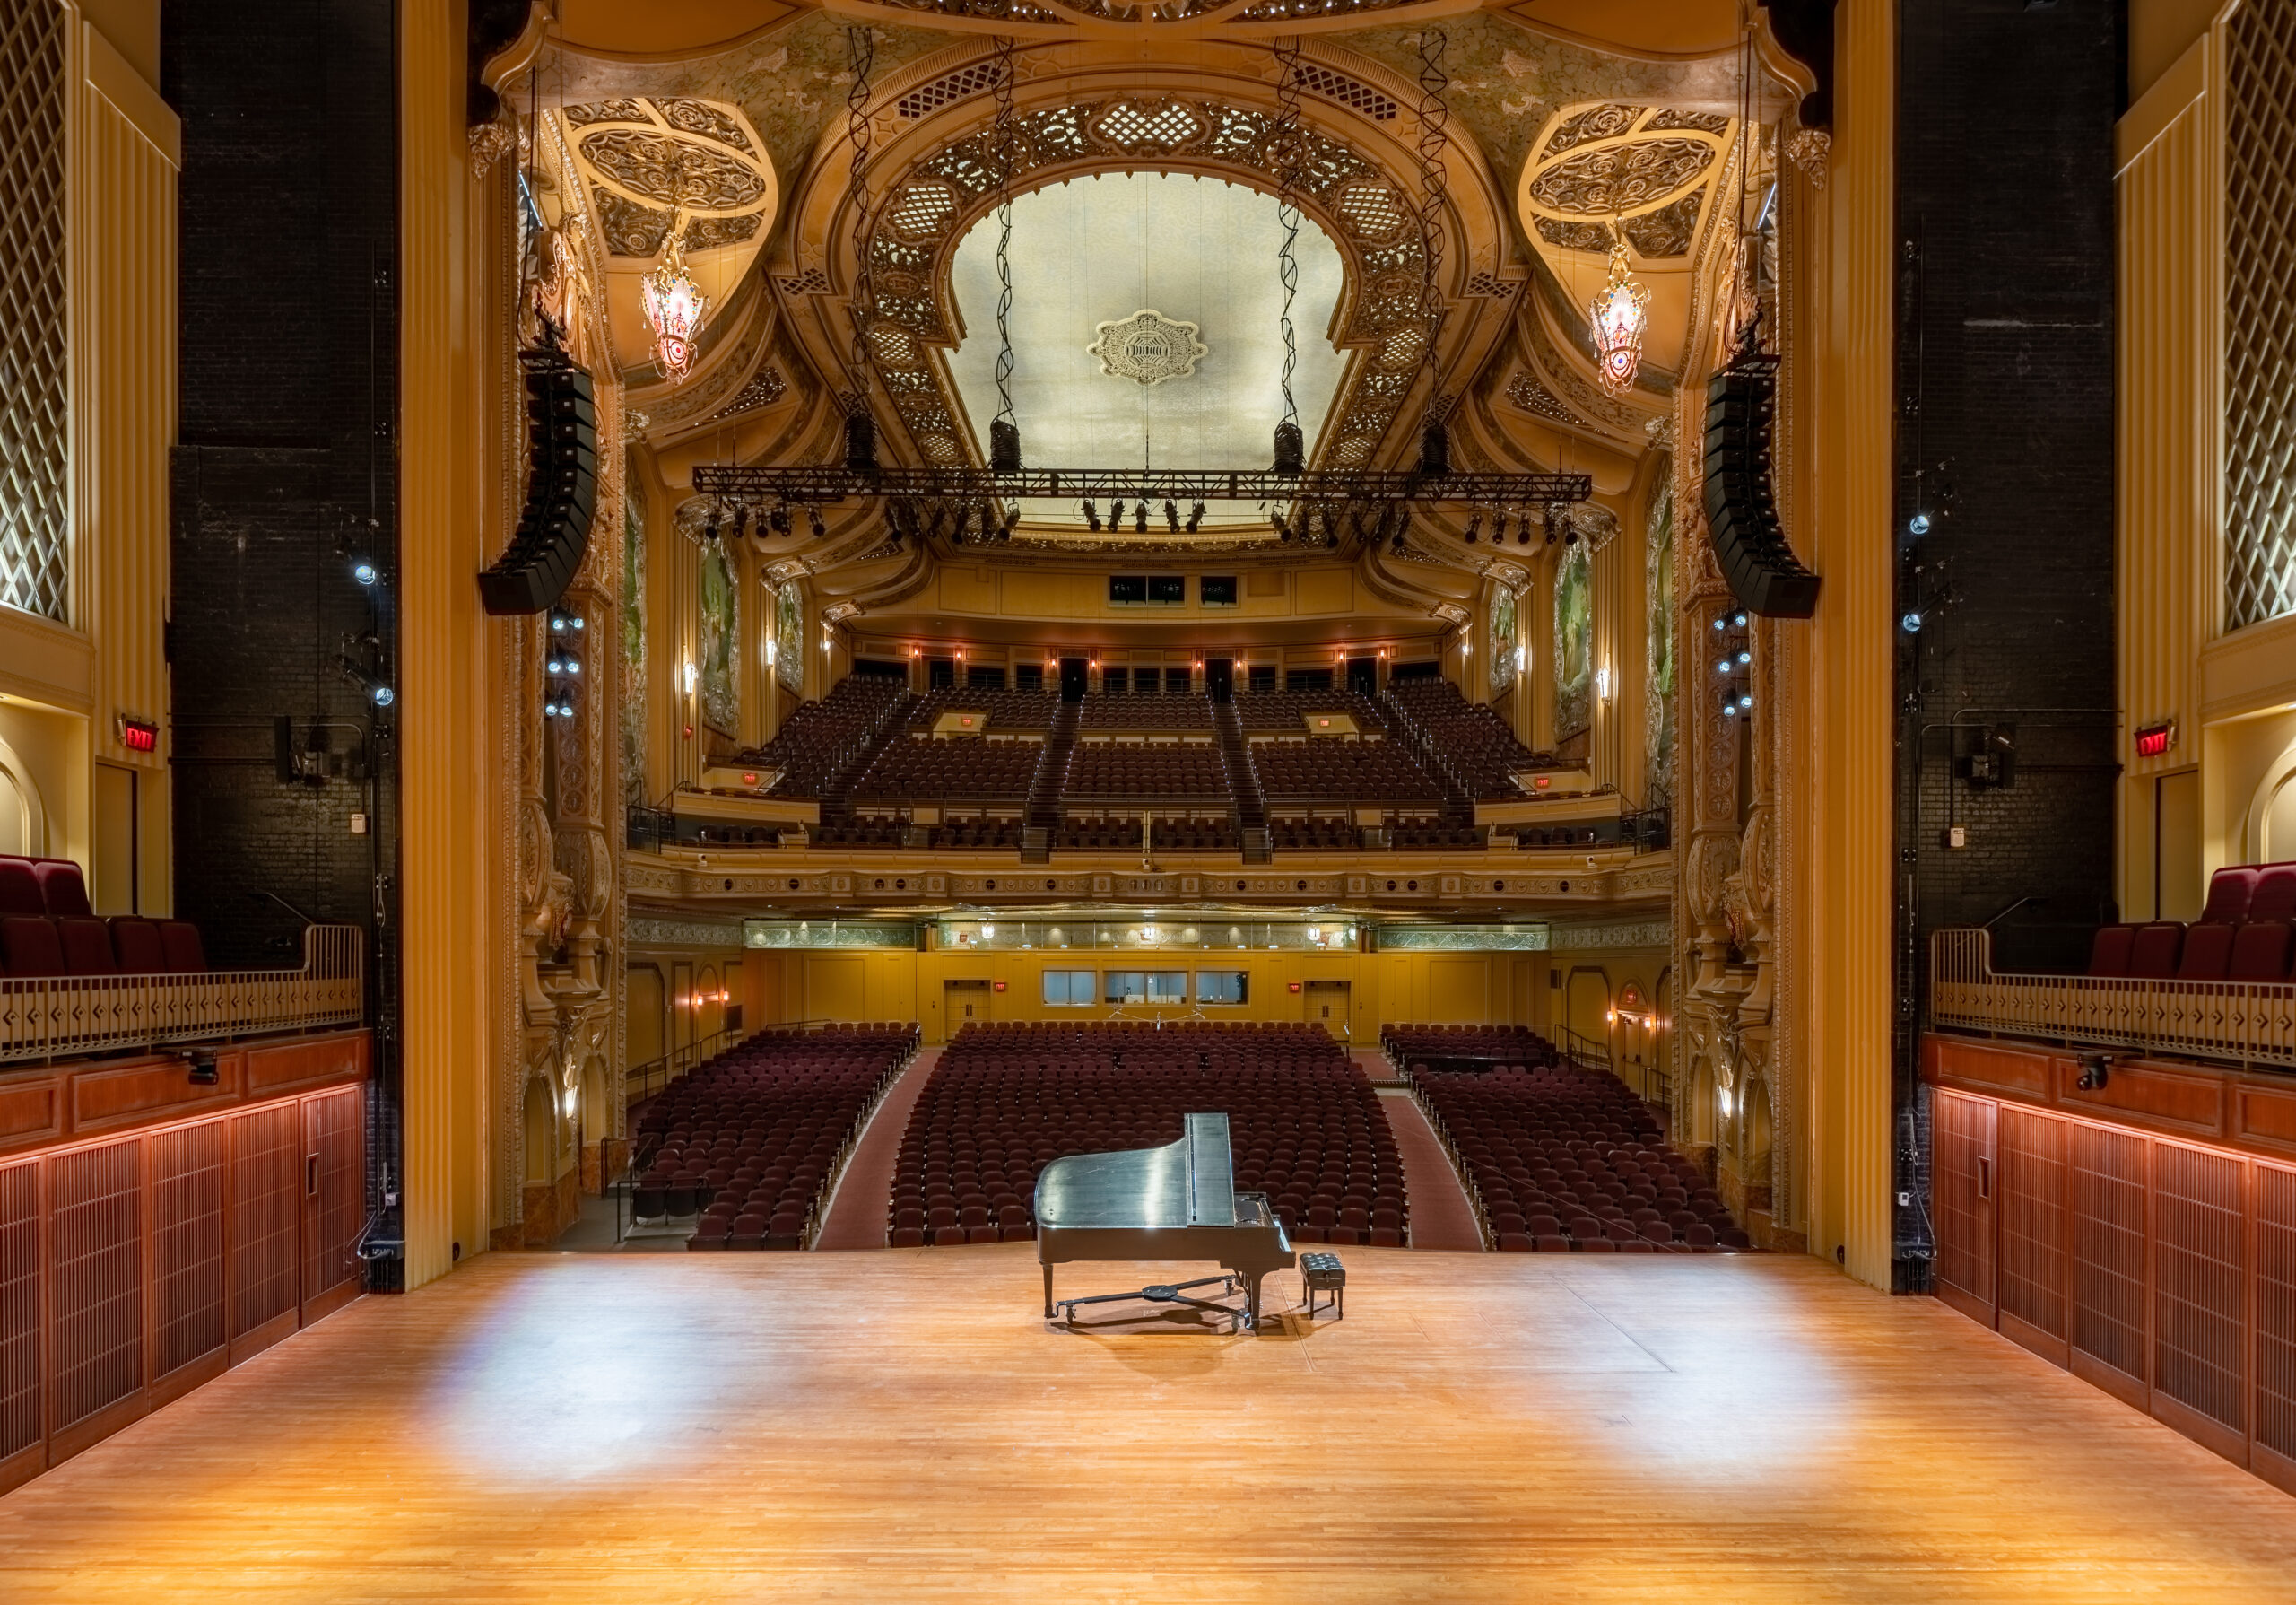 The interior of a grand art deco symphony hall looking out at the seating from the stage.